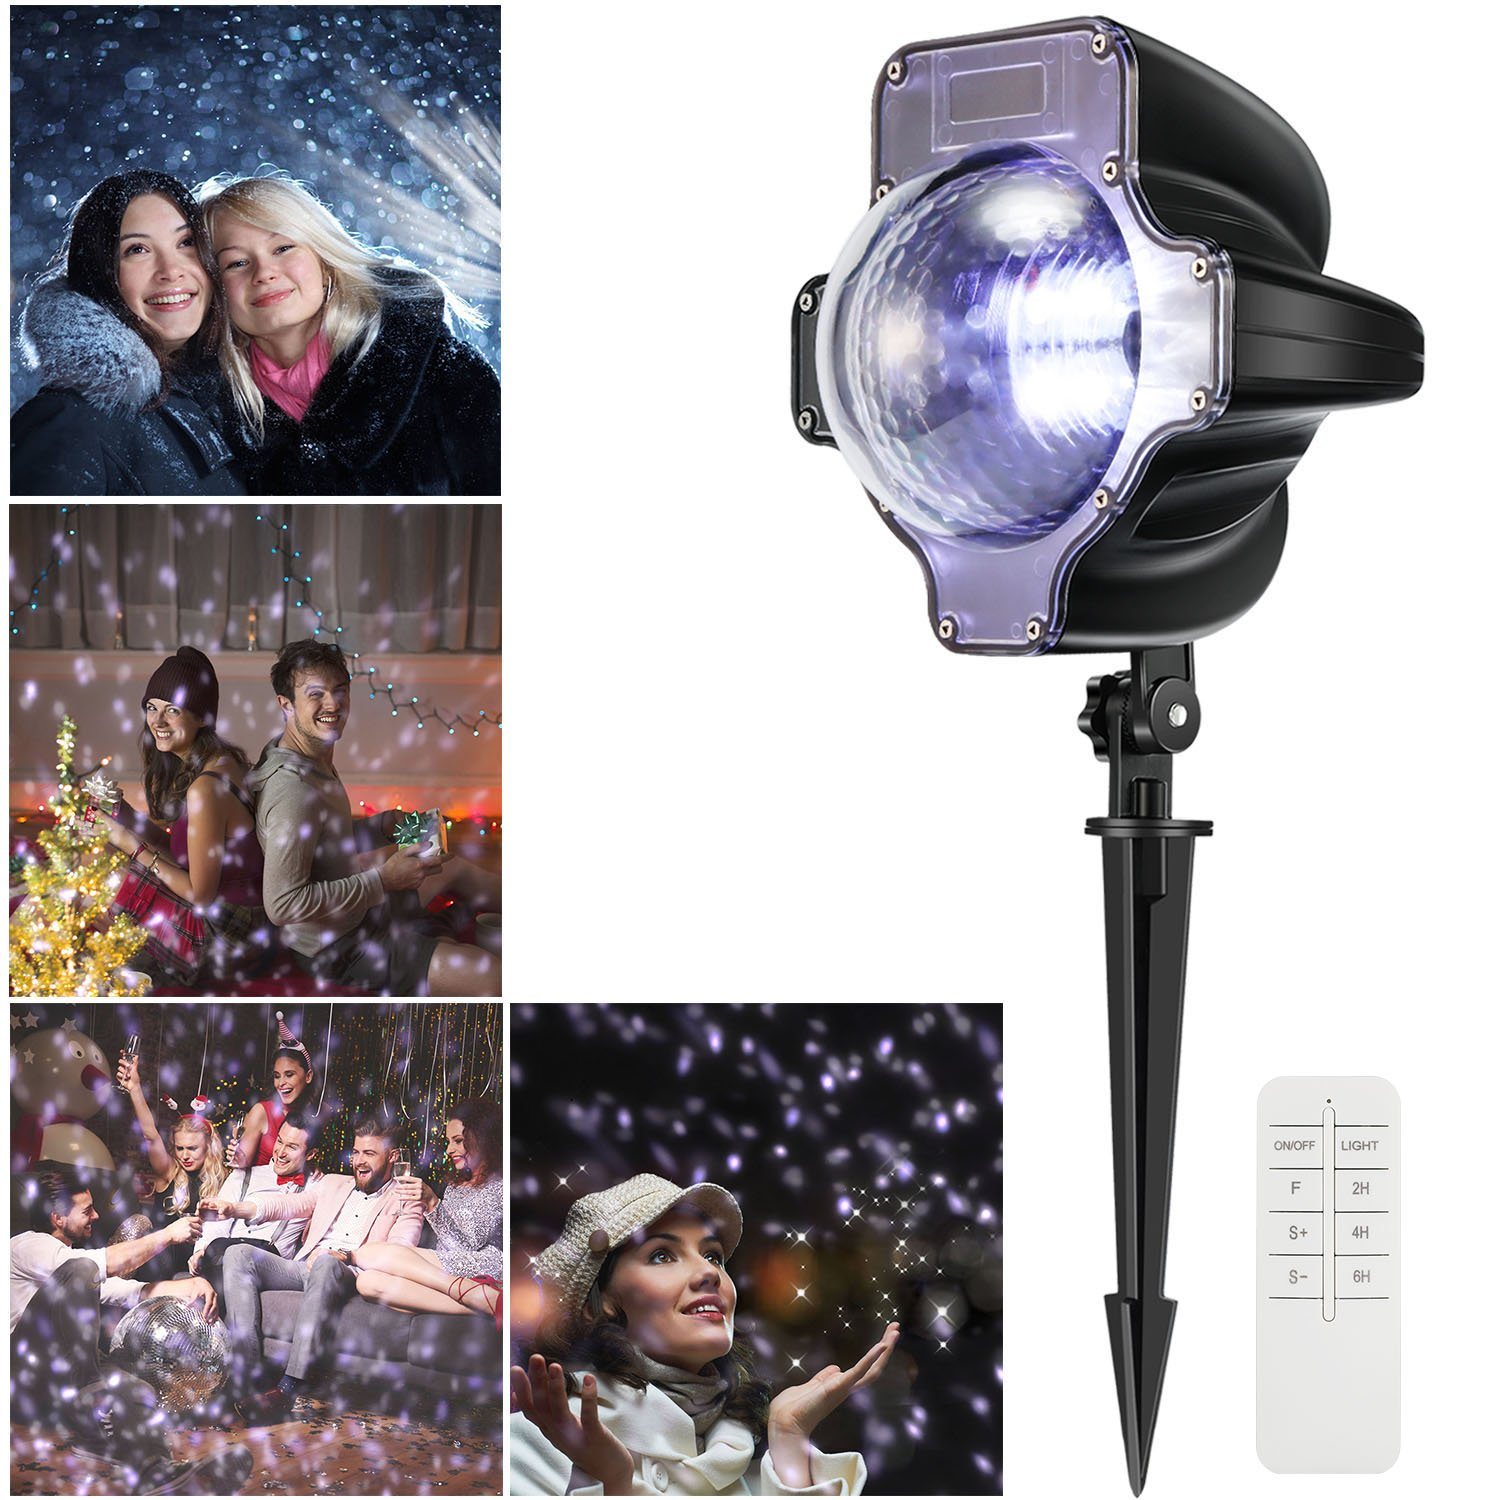 Christmas Projection Lights, Magicfly Xmas Snowfall Projector LED light Waterproof Rotating Fairy Landscape LED lights with Remote Control for Christmas, Party, Patio, Holiday Decorations